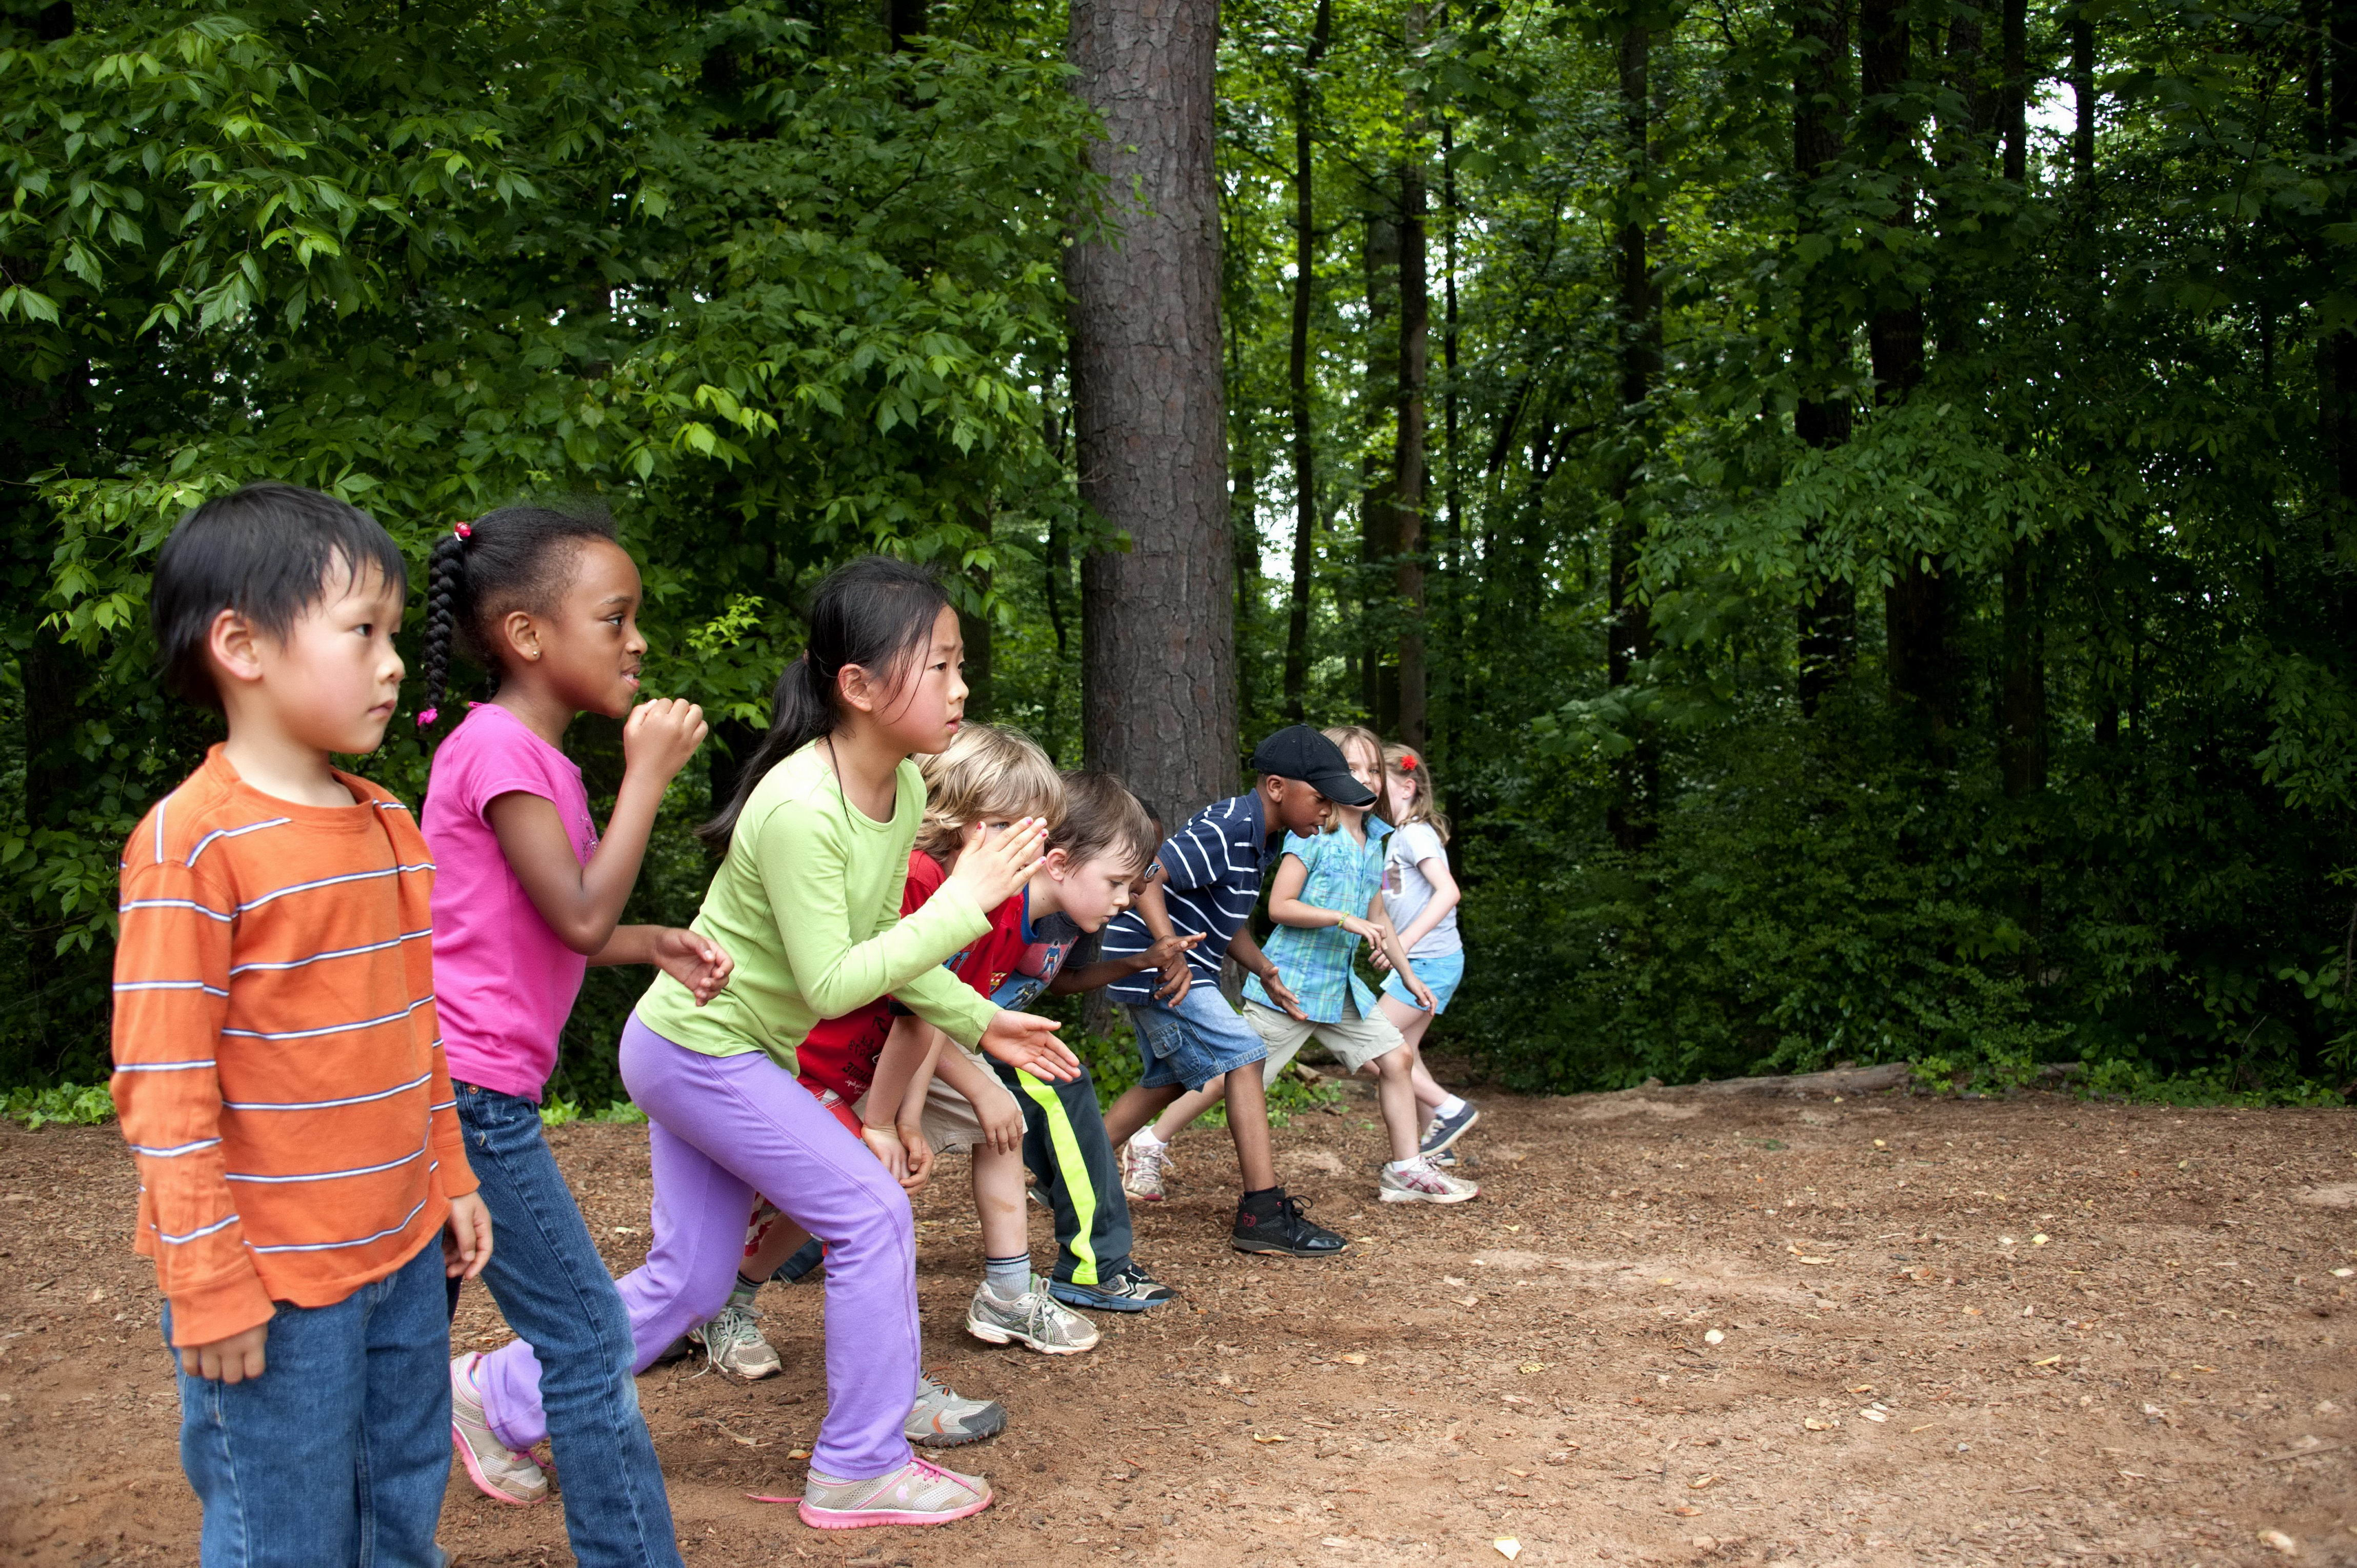 Free picture: children, participate, footrace